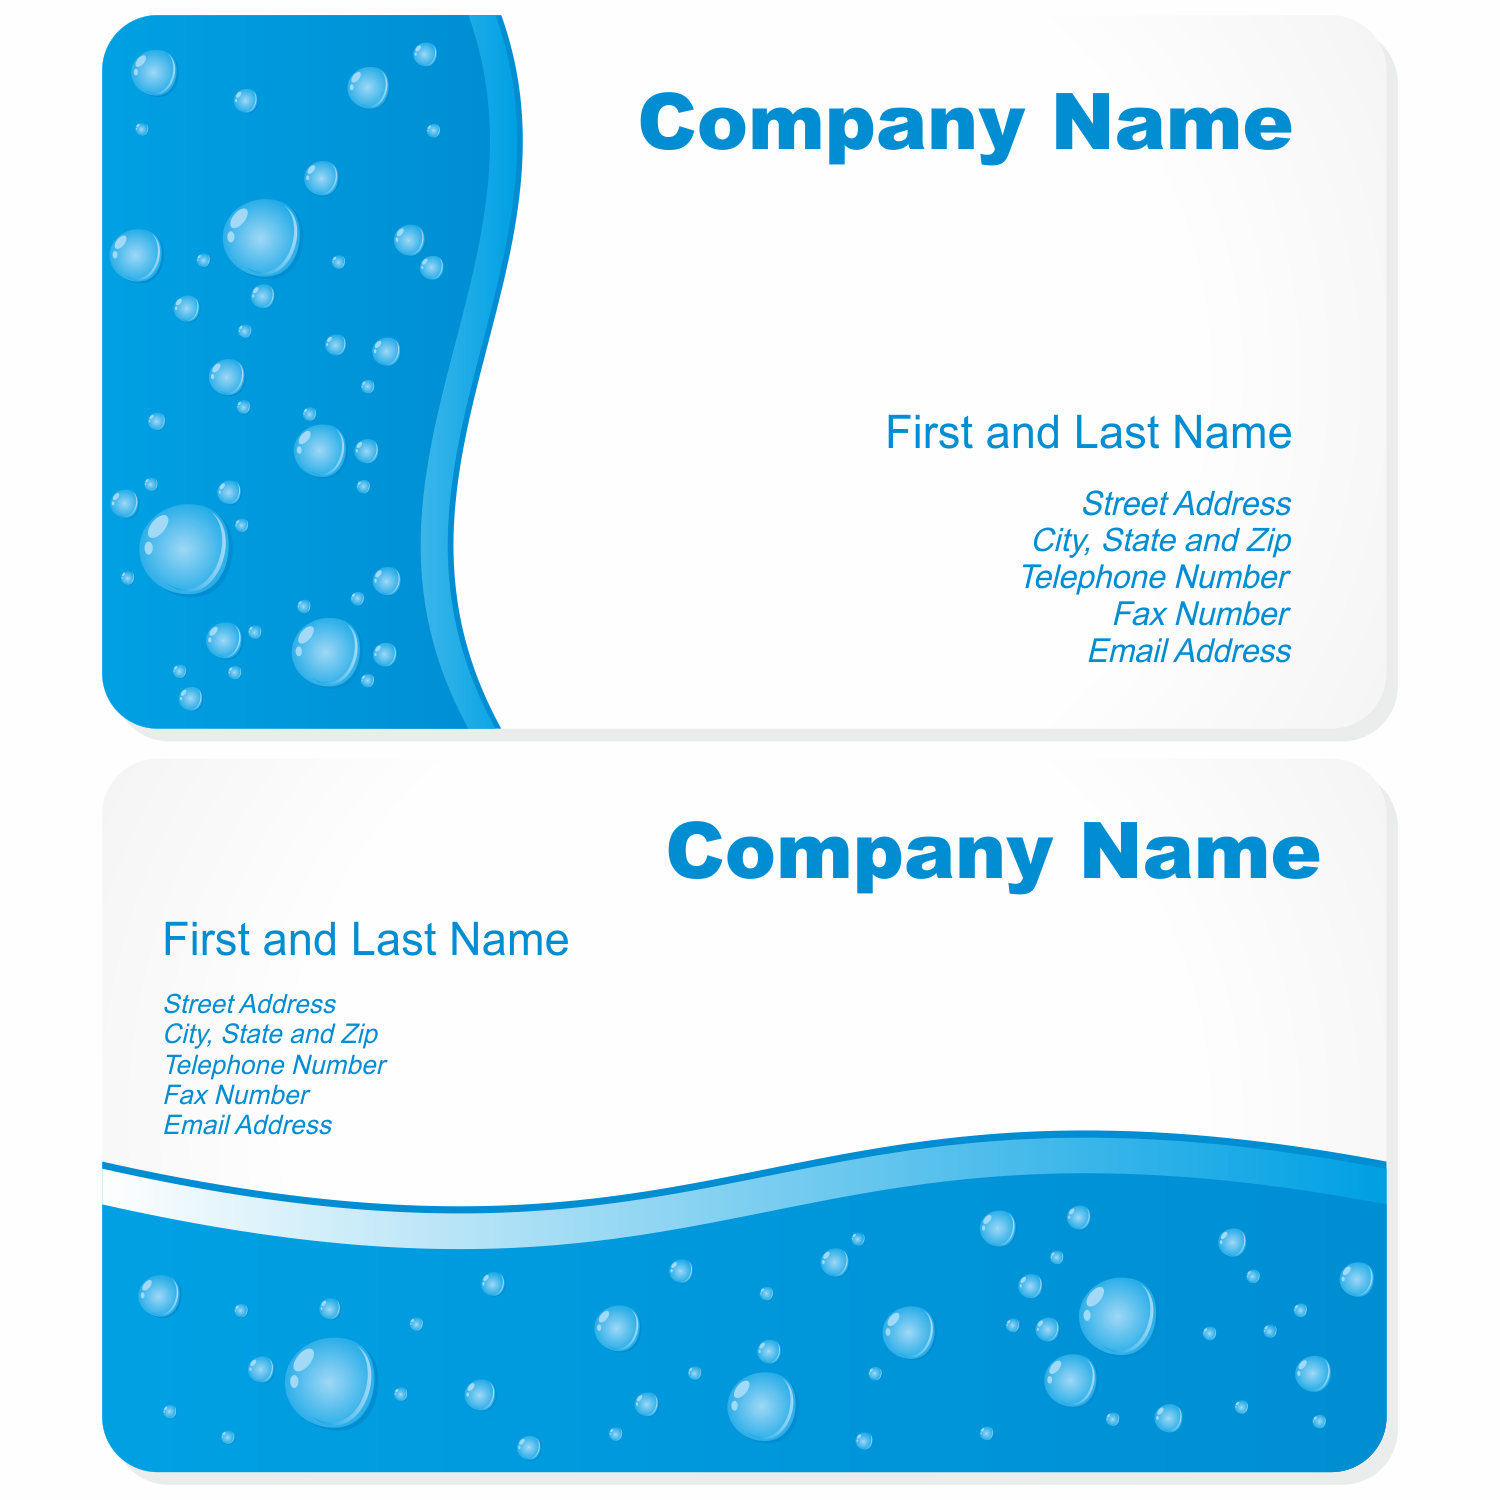 Free business card template online business card sample free business card template online fbccfo Images